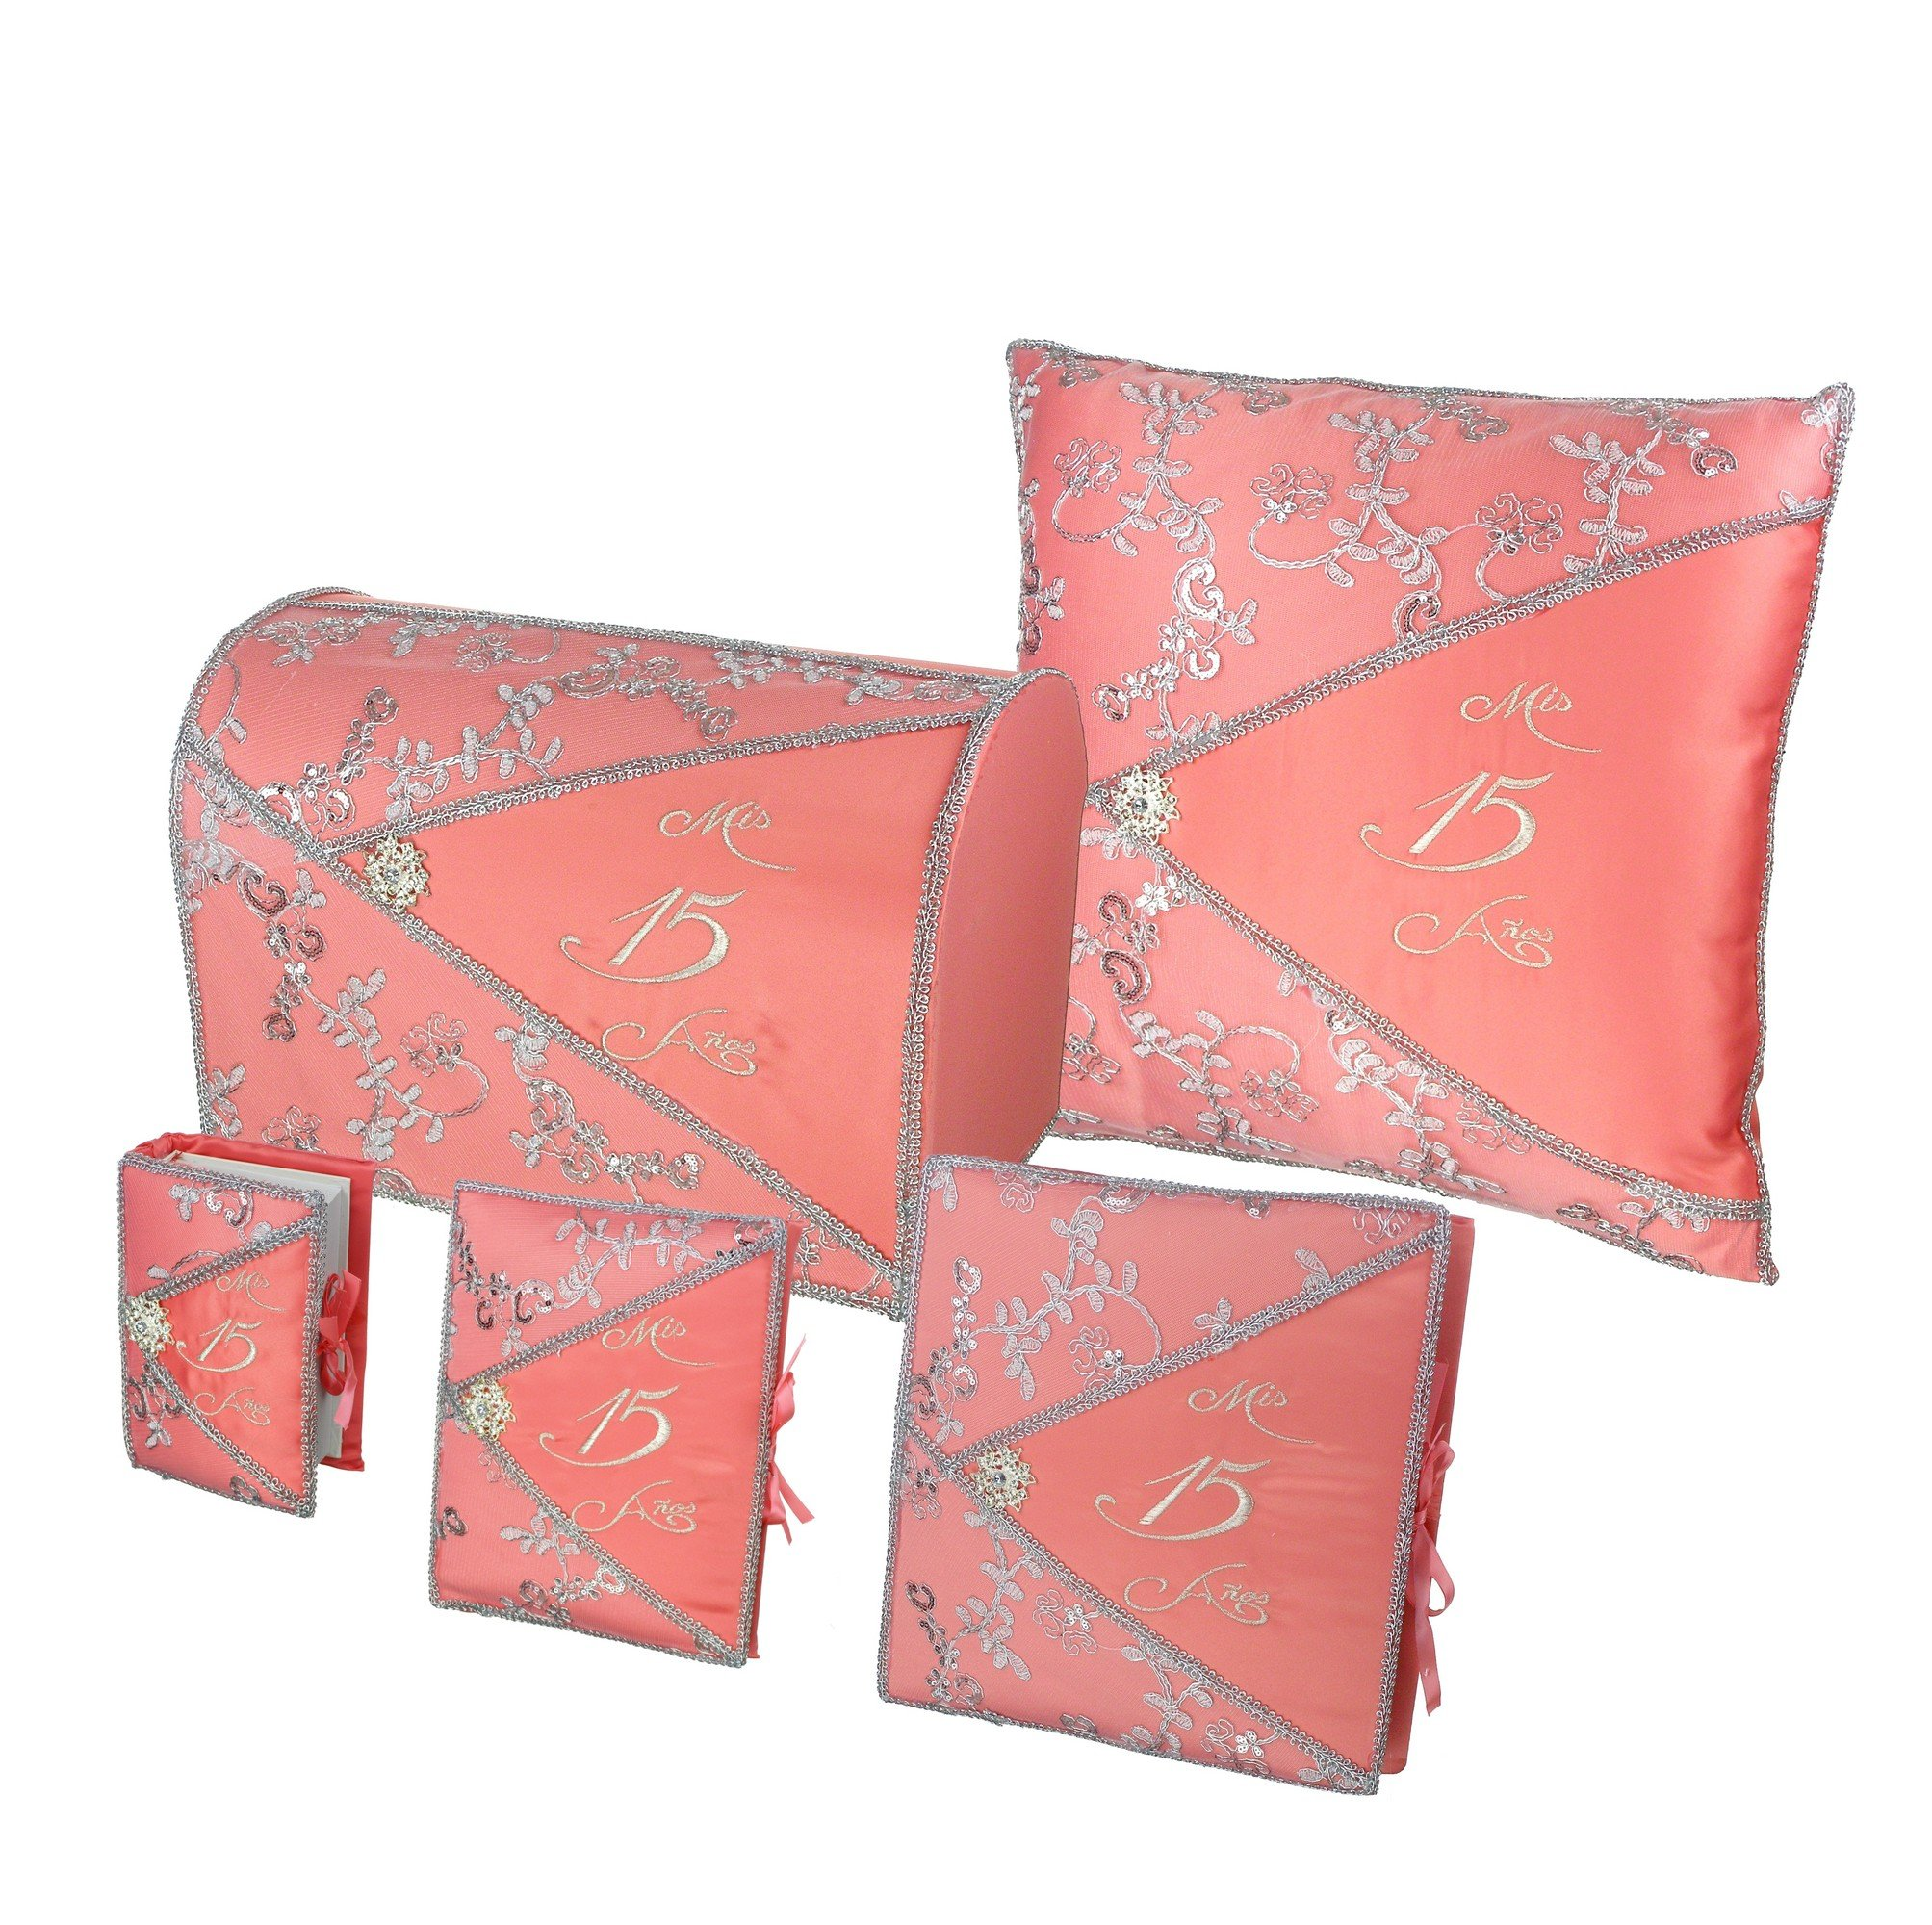 Quinceañera Accessory Set Bible Guest Book Photo Album Gift Box Kneeling Pillow - Coral 200